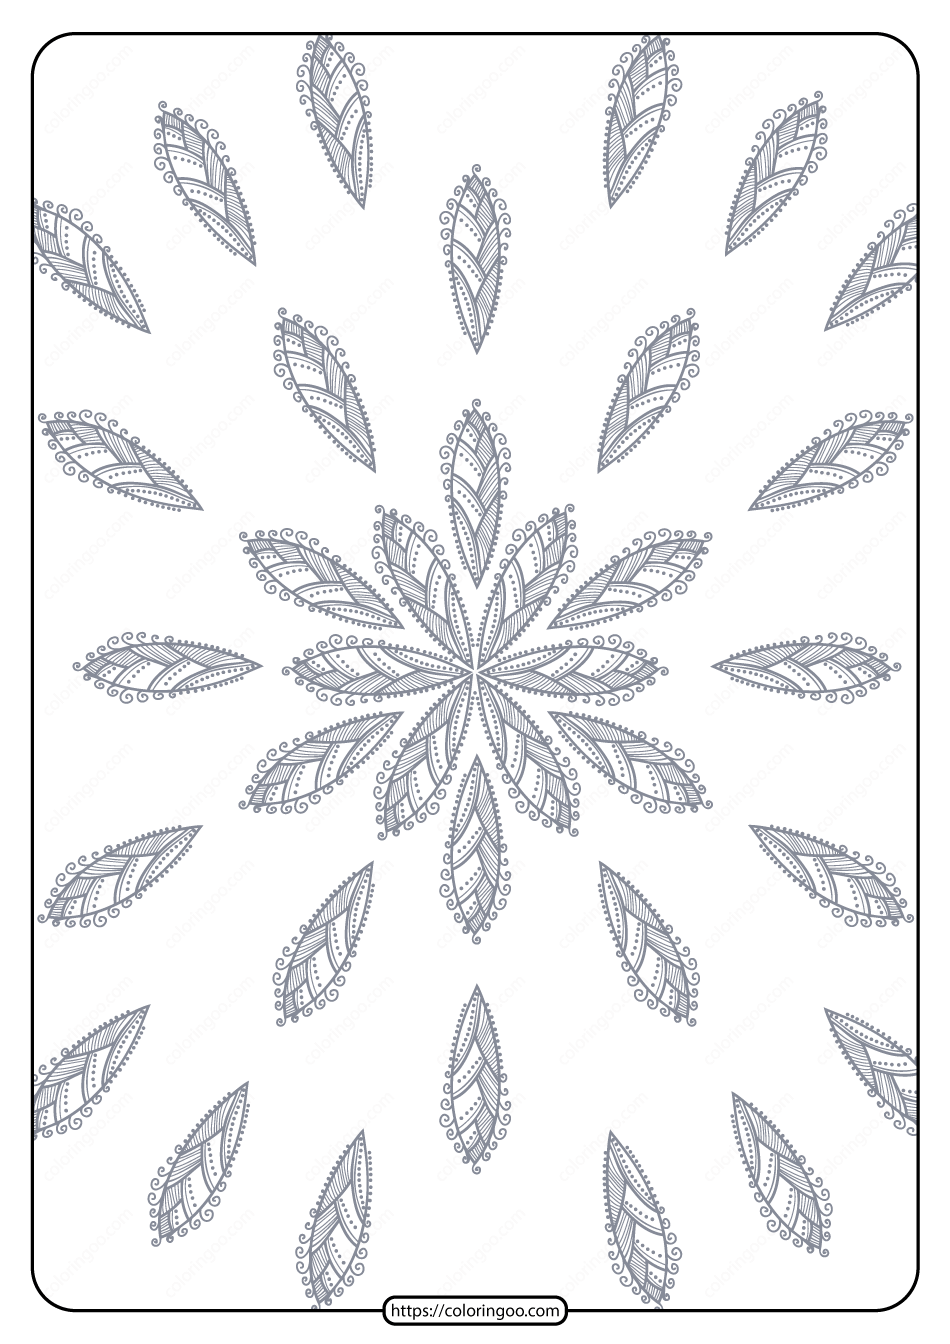 Printable Flower Geometric Pattern Coloring Page 09